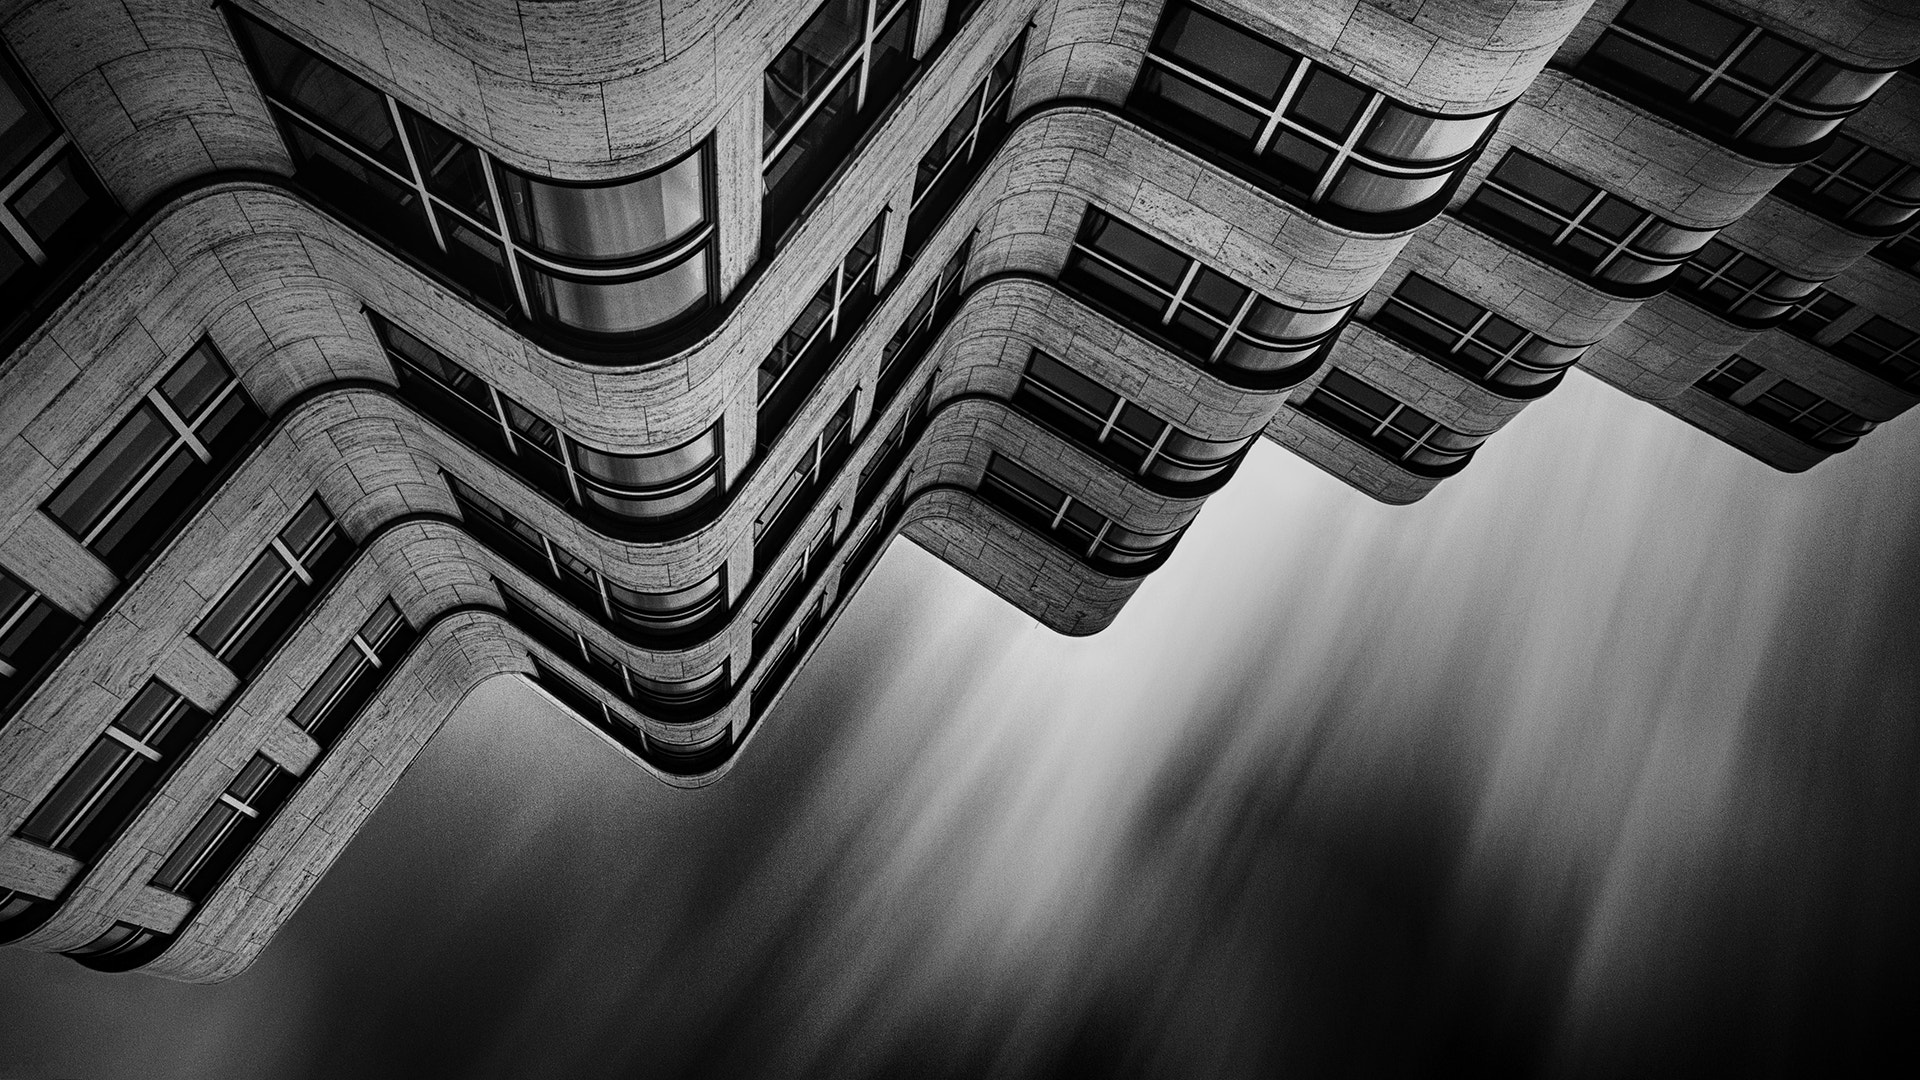 Photograph Shell house Berlin by Kees Smans on 500px